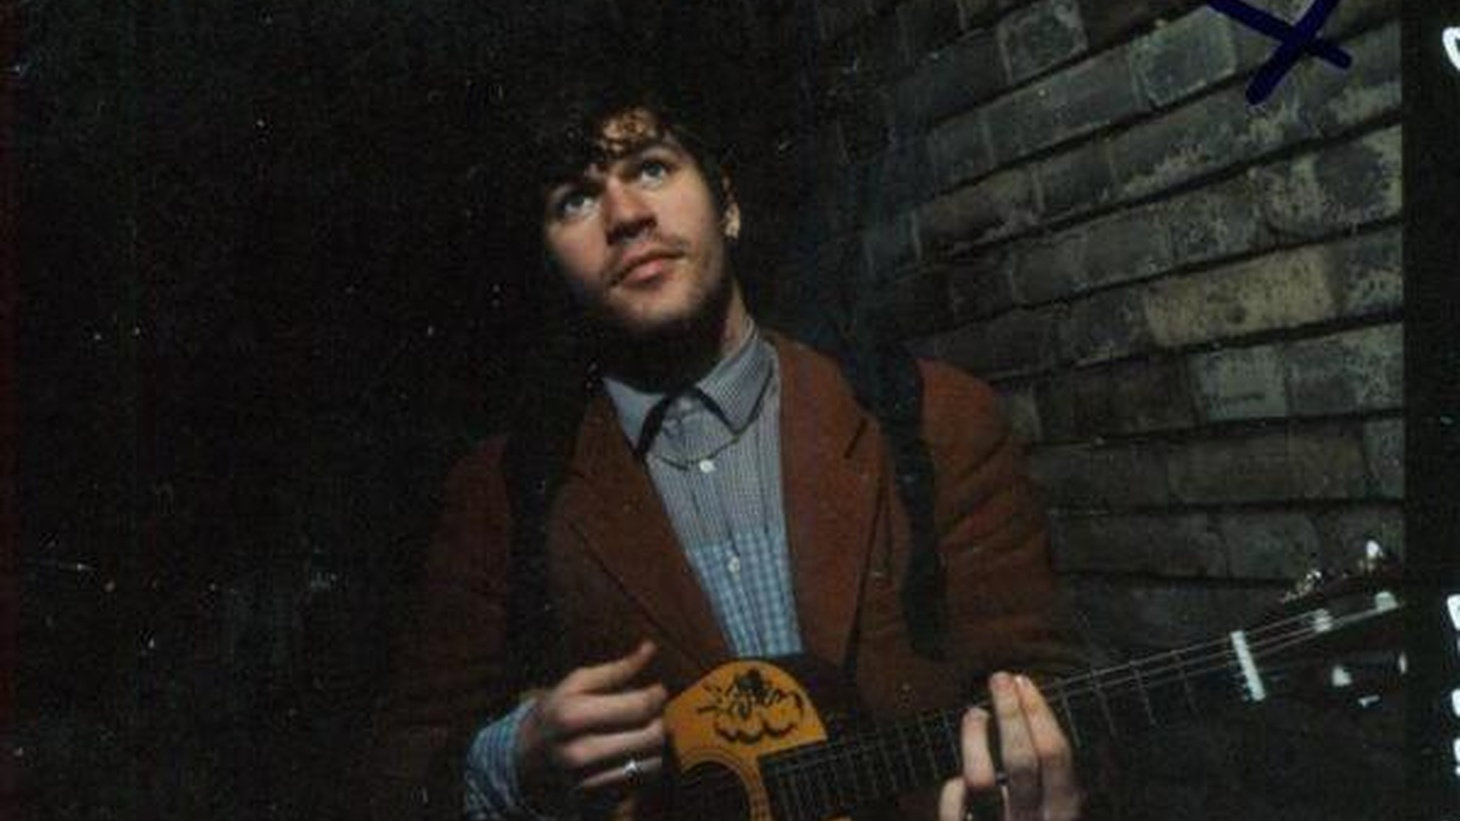 ...from his new, as yet untitled, CD.   Twenty-four year-old British singer-songwriter Jack Peñate is putting the finishing touches on his second release, songs mourn the loss of his youth-- in an upbeat way...